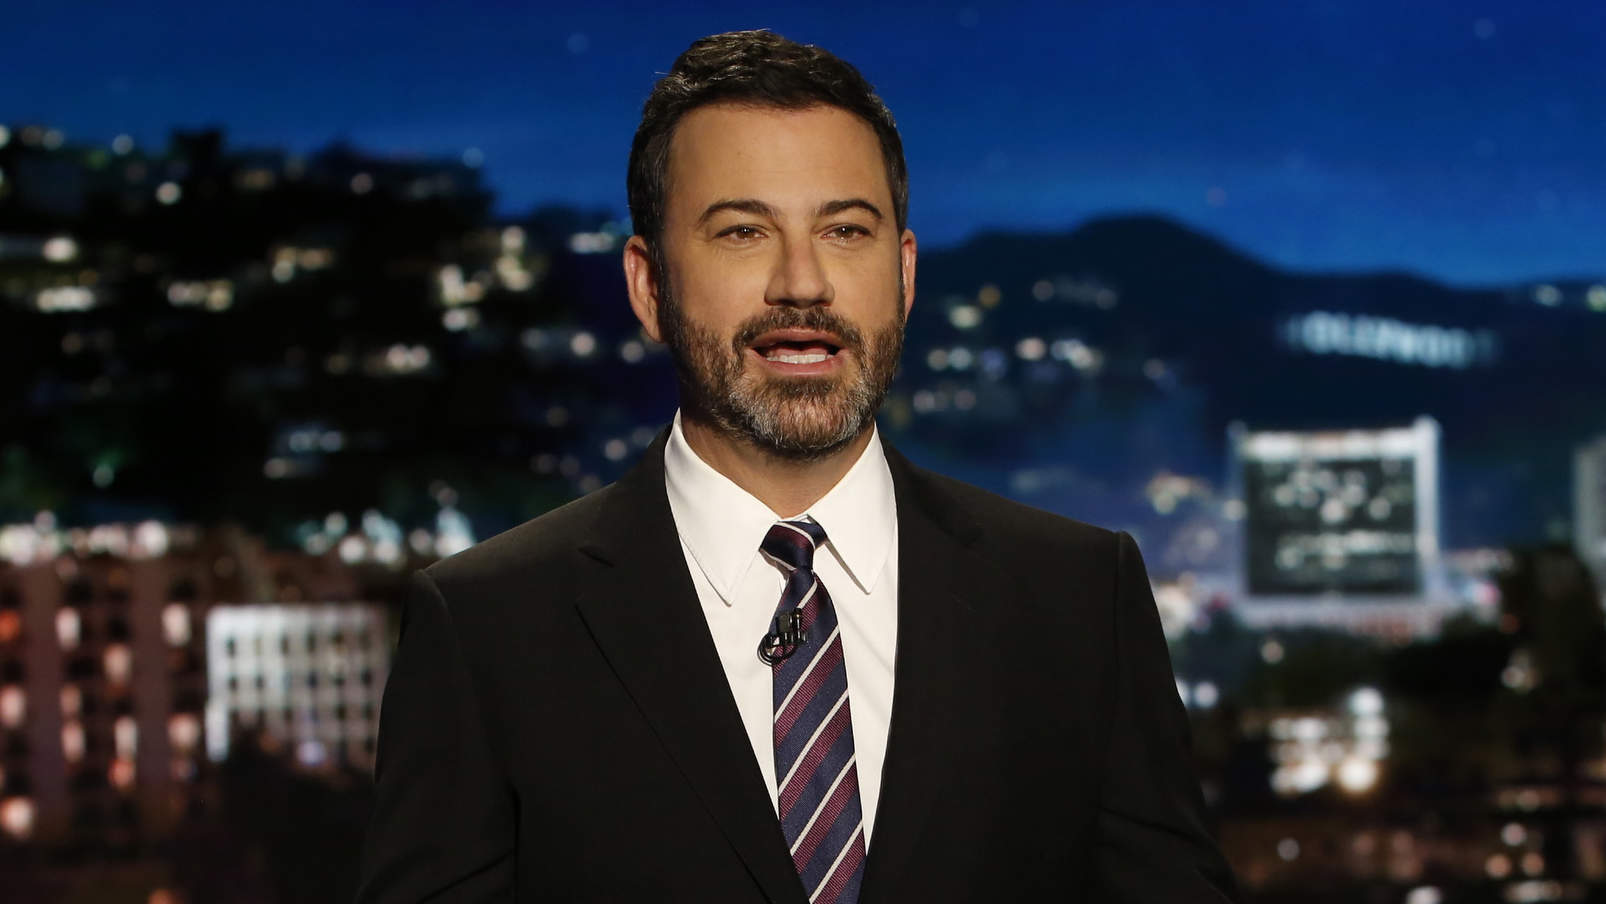 Jimmy Kimmel's 7-Month-Old Son Billy Had a 'Successful' Second Heart Surgery